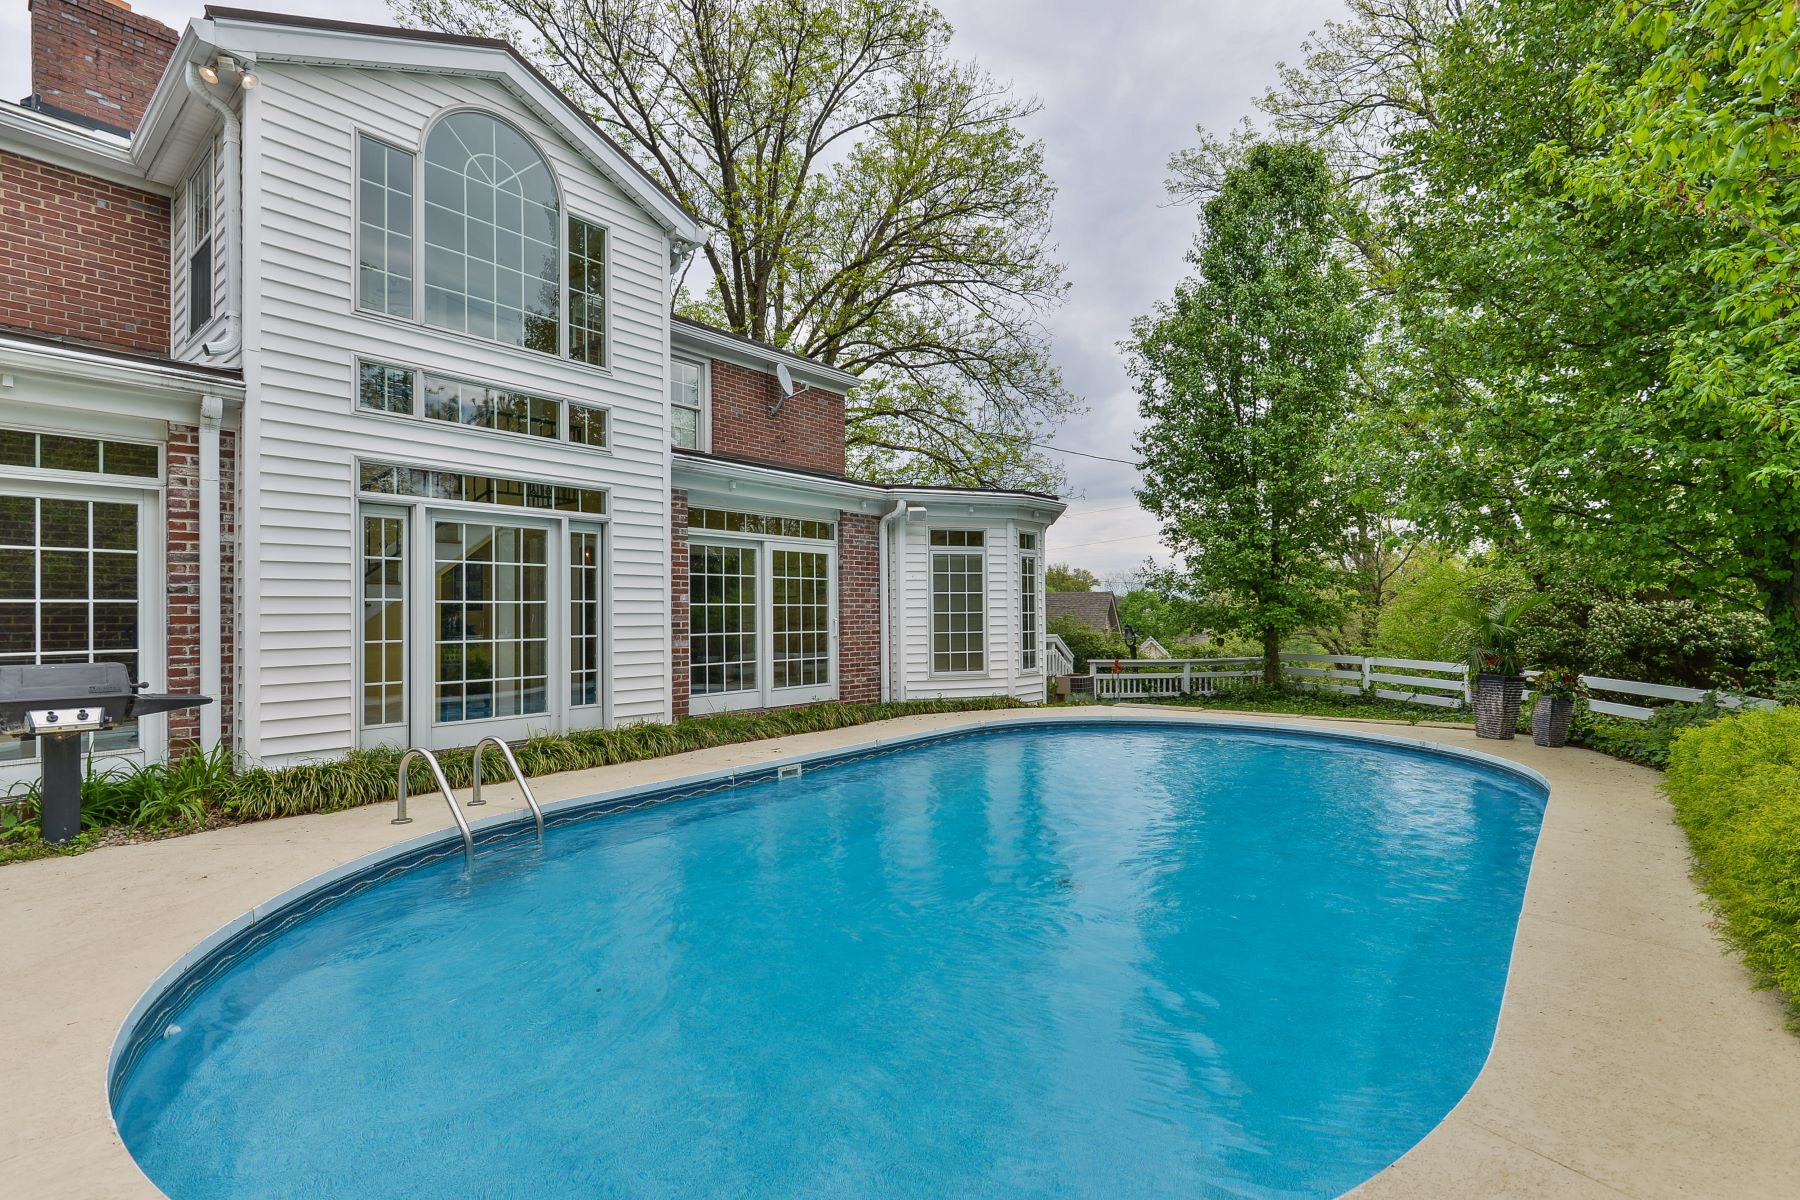 Additional photo for property listing at 2900 Newburg Road  Louisville, Kentucky 40205 United States